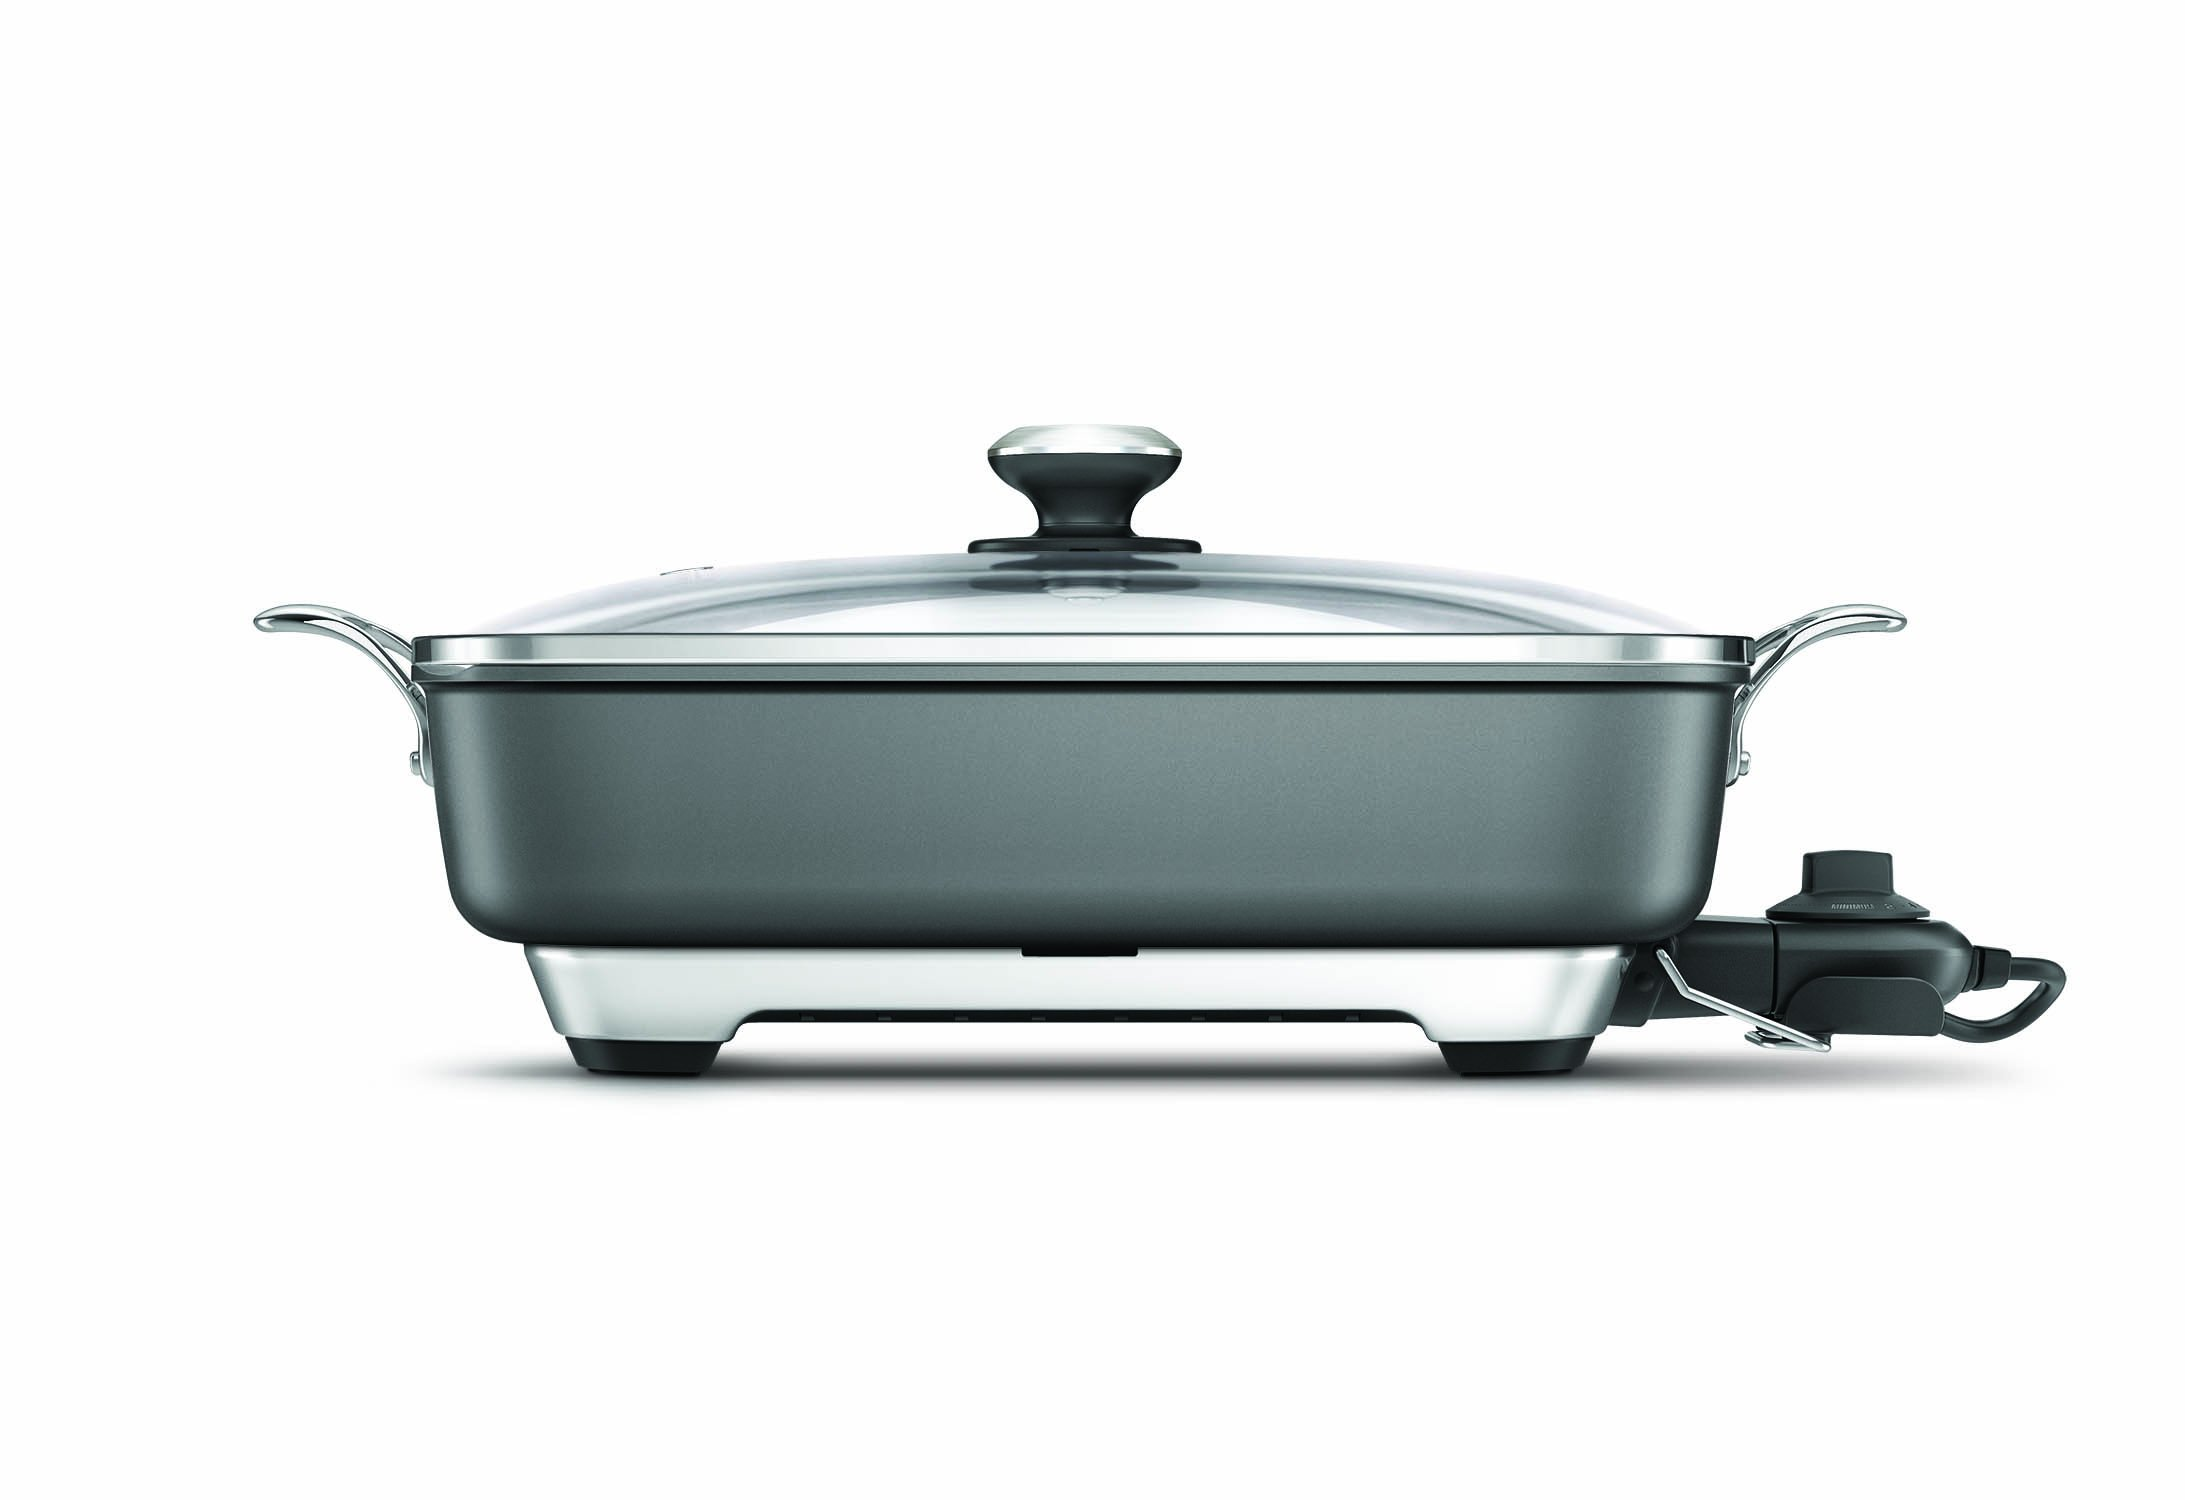 Breville BEF450XL Thermal Pro Banquet Skillet by Breville